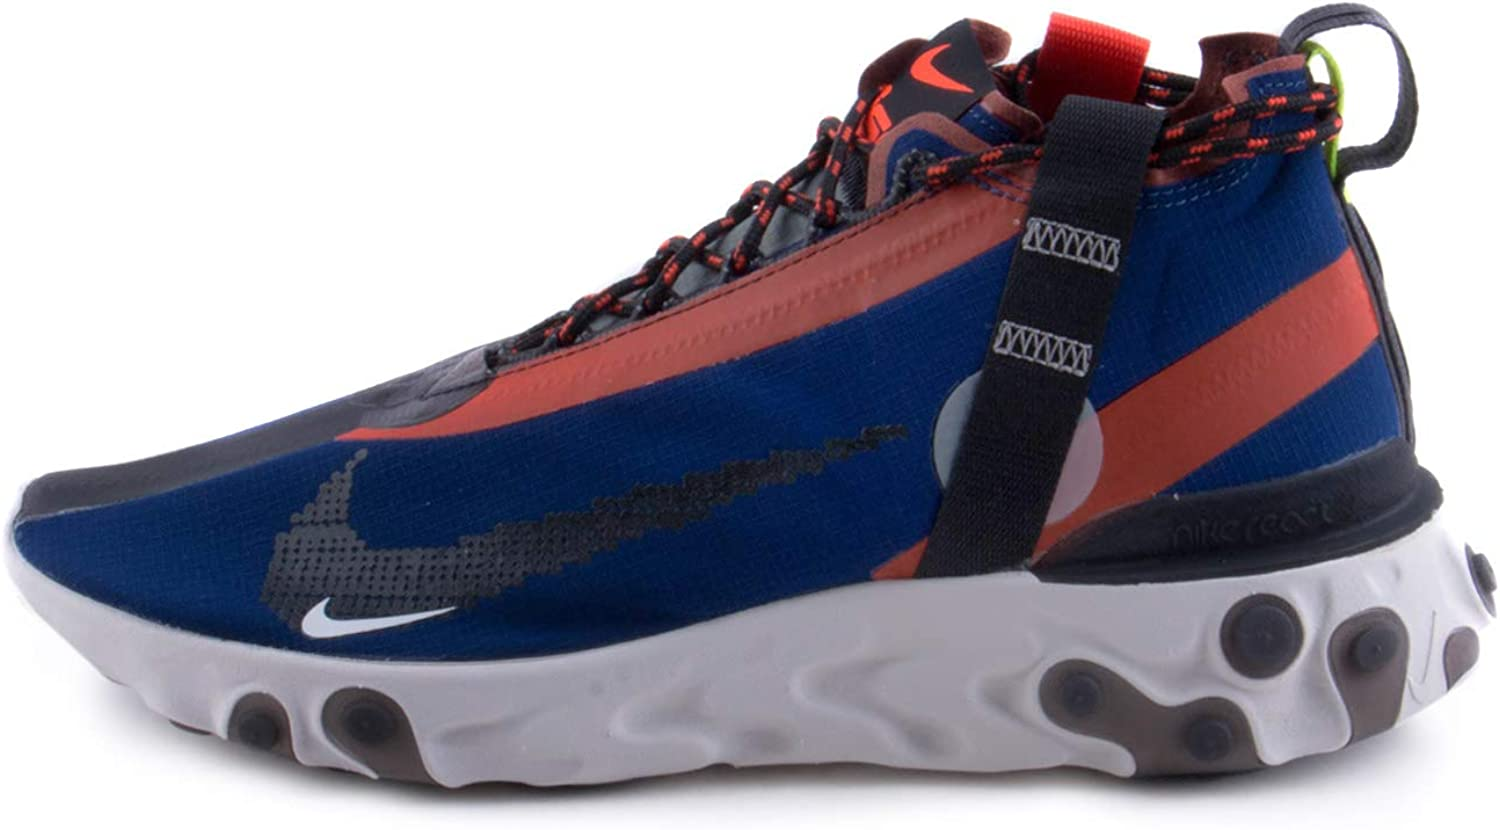 Nike React Runner Mid Wr Ispa Mens Running Trainers At3143 Sneakers Shoes